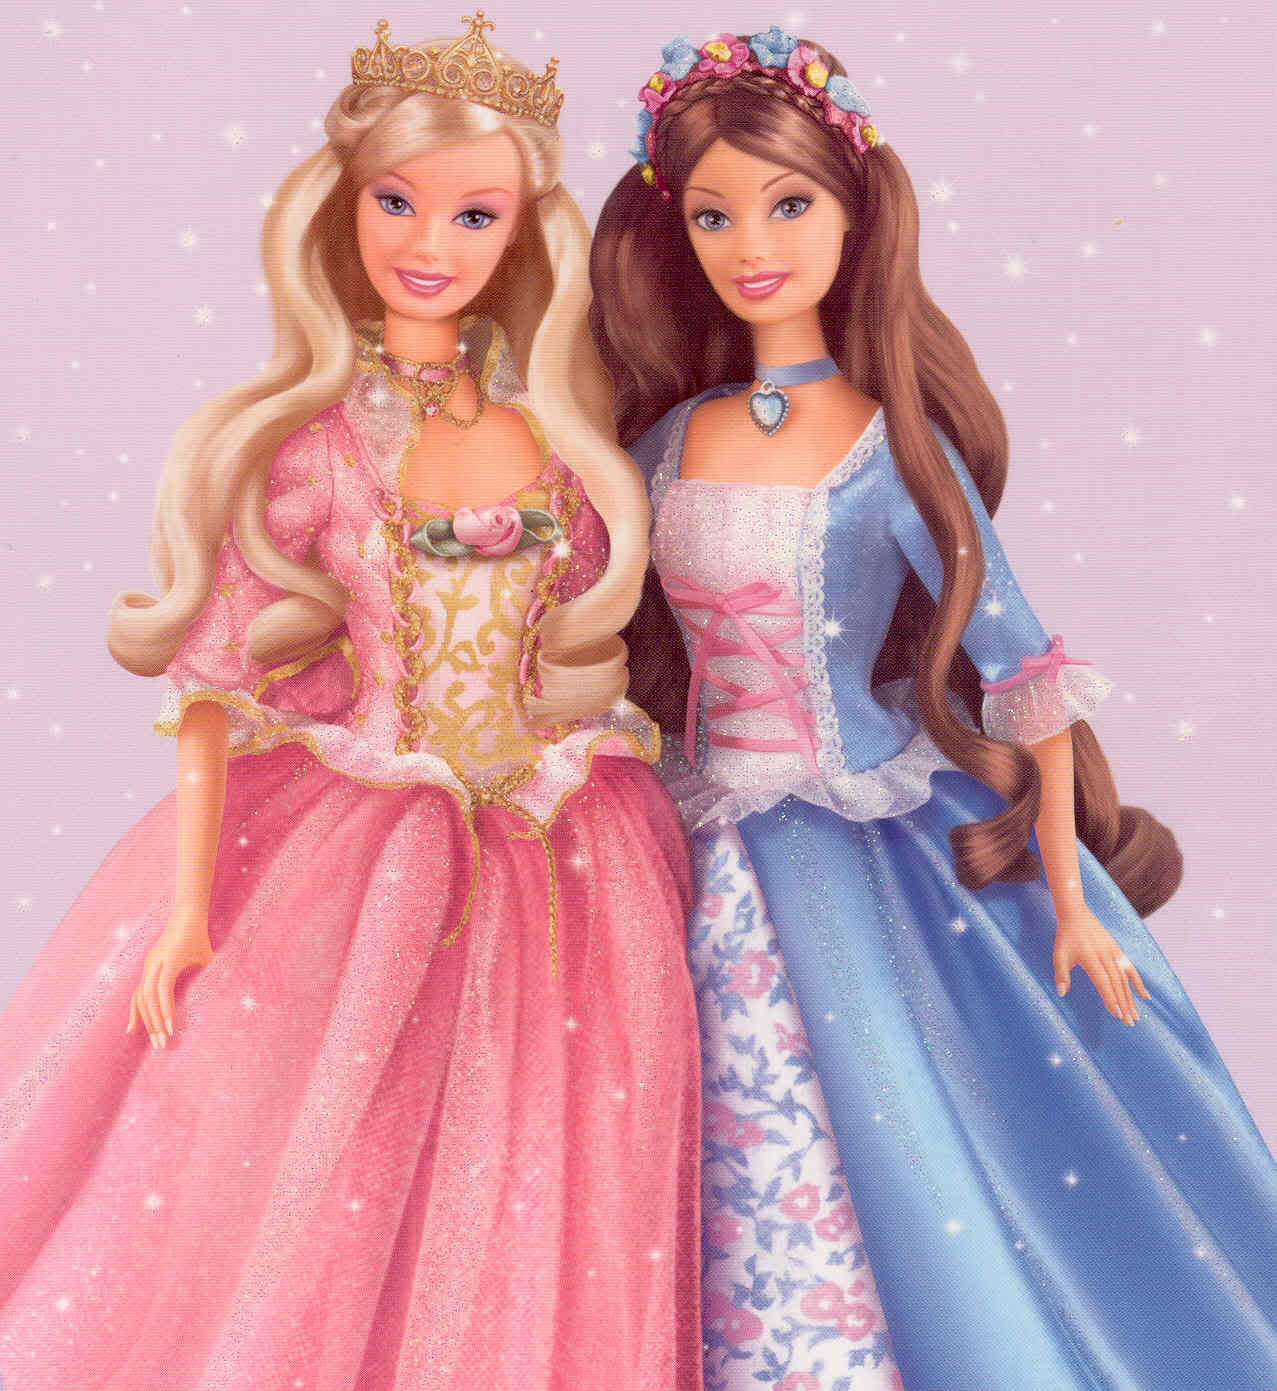 Barbie-princess-barbie-and-disney-princess-3-32647776-1277-1391.jpg